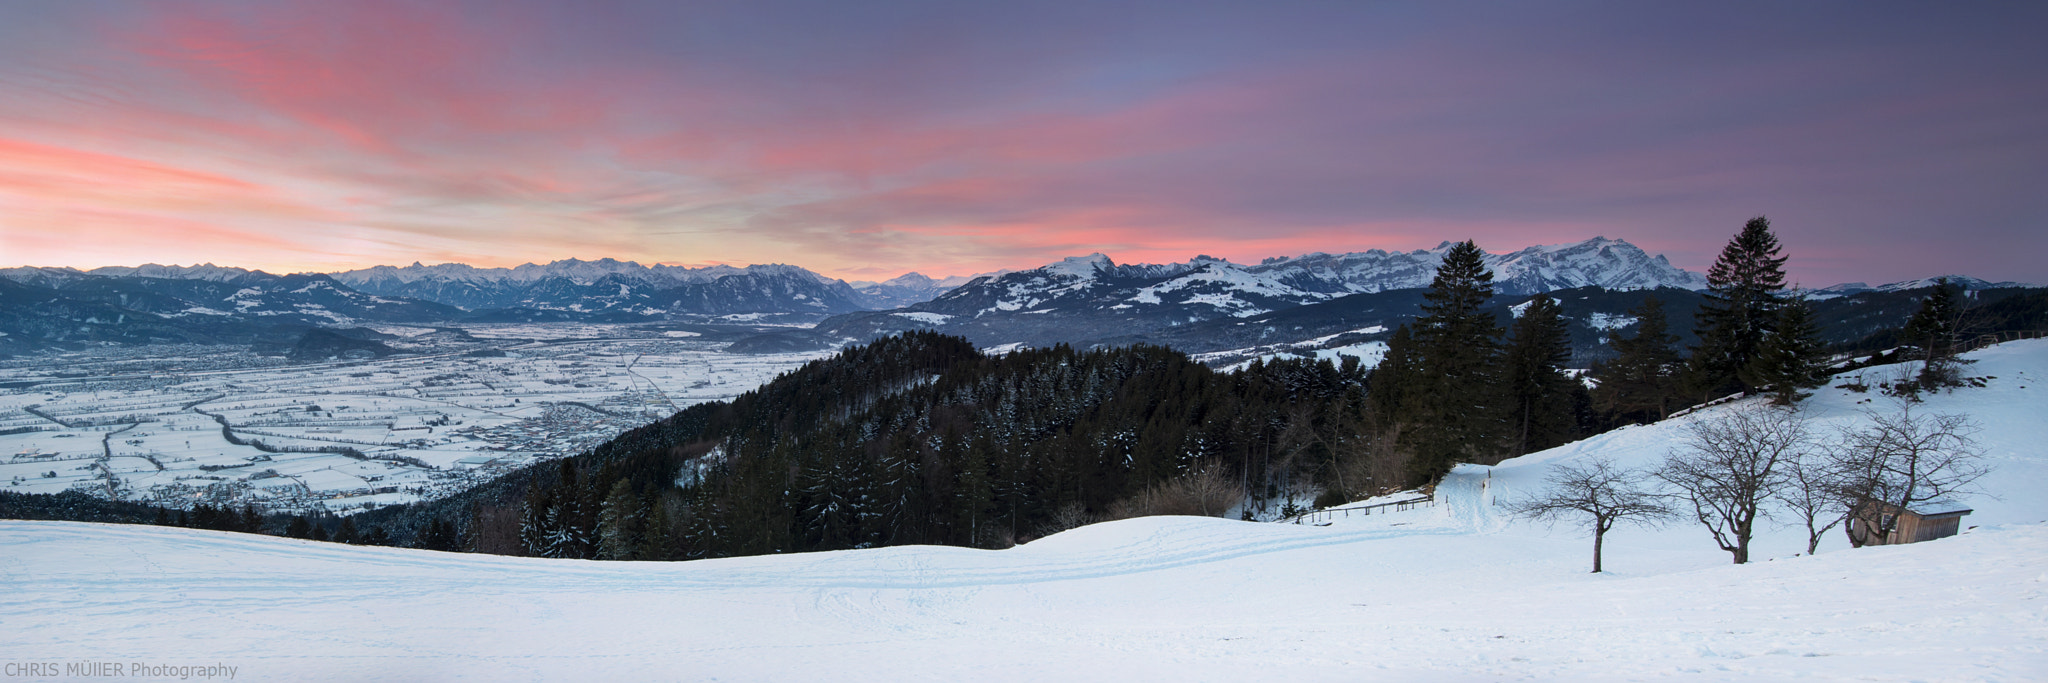 Photograph St. Anton by Chris Müller on 500px